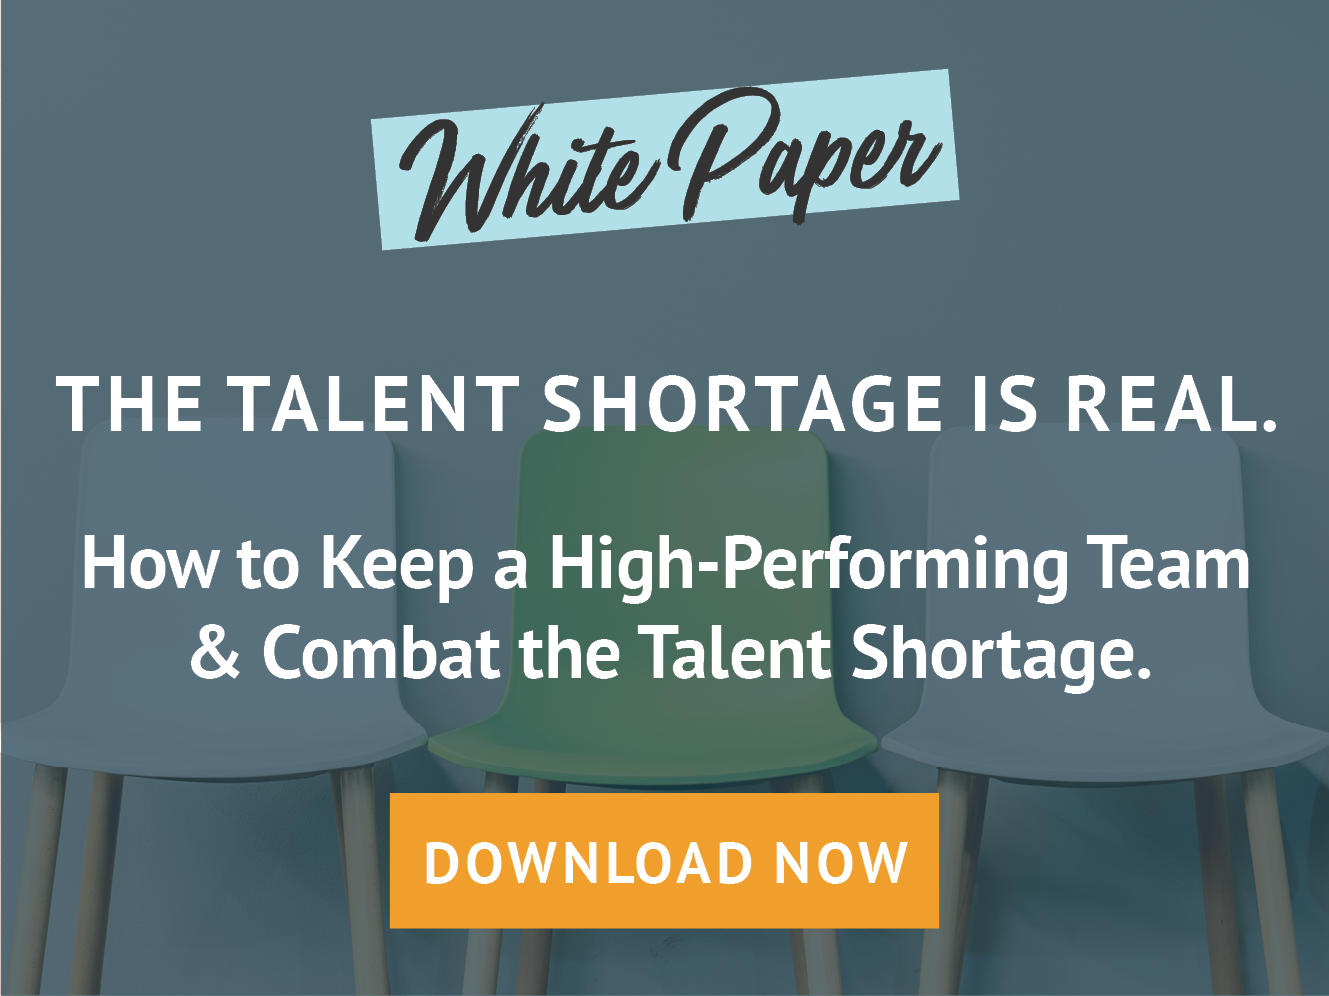 How to Keep a High-Performing Team & Combat the Talent Shortage | WunderLand Group